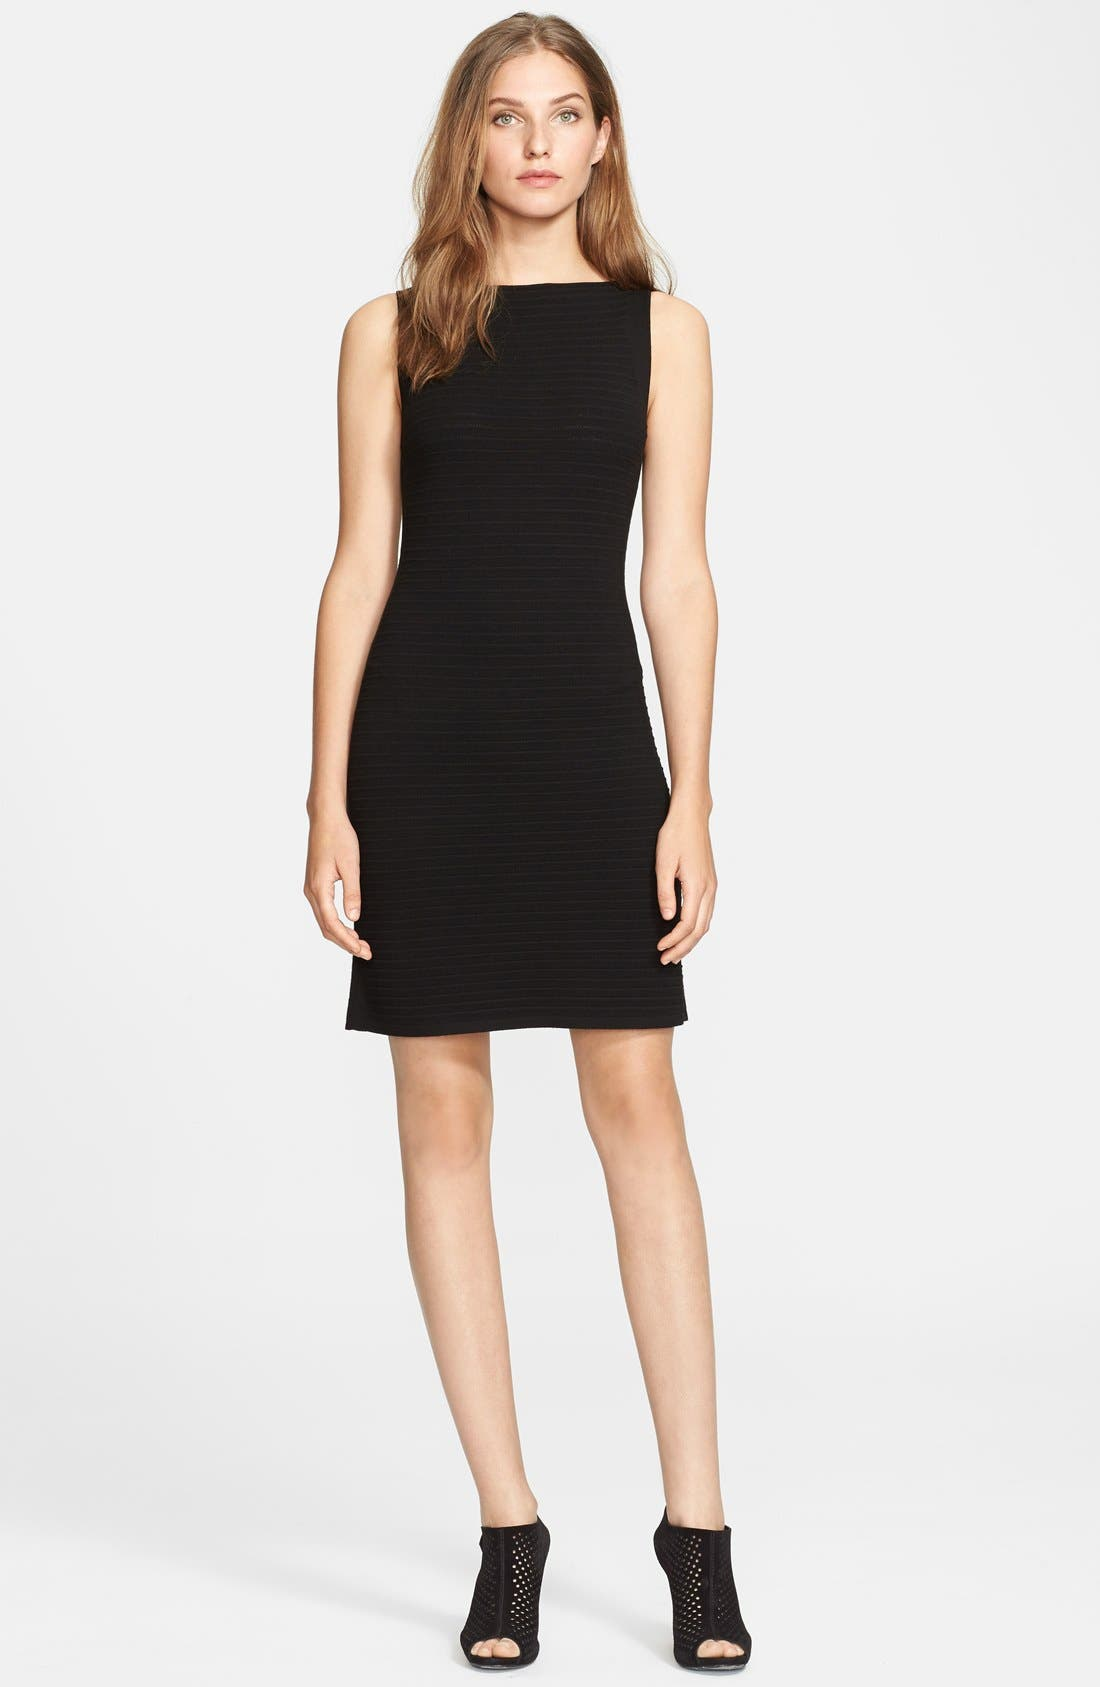 THEORY 'Abrissa' Sheath Dress, Main, color, 001